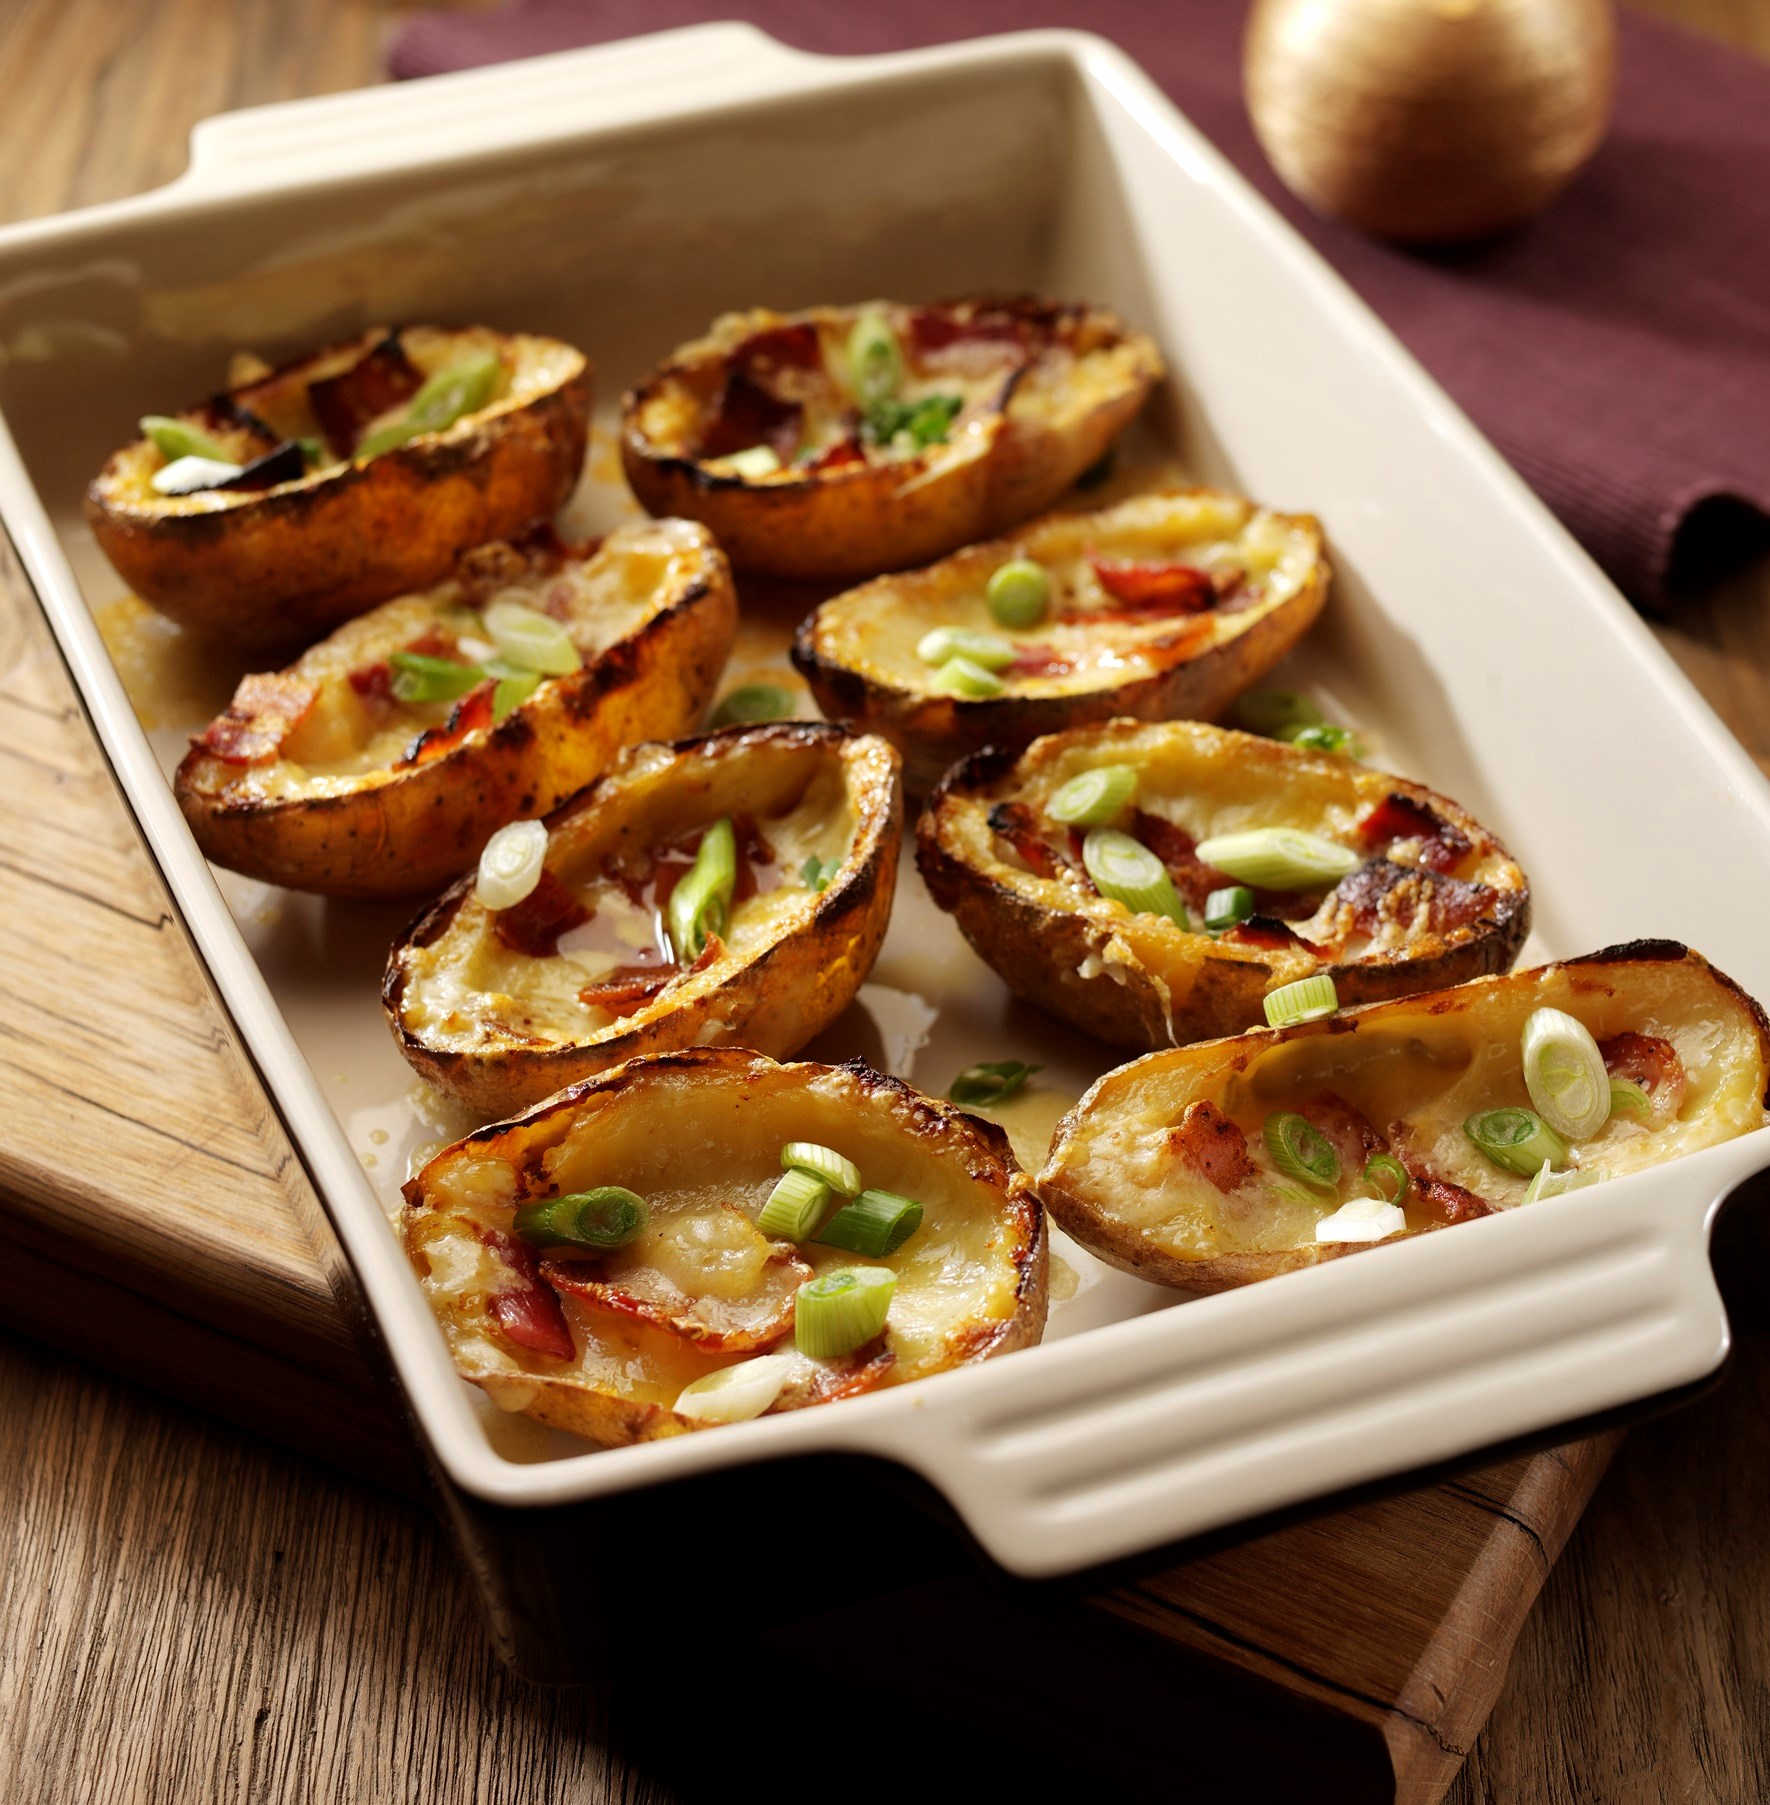 Potato skins portrait3.jpg